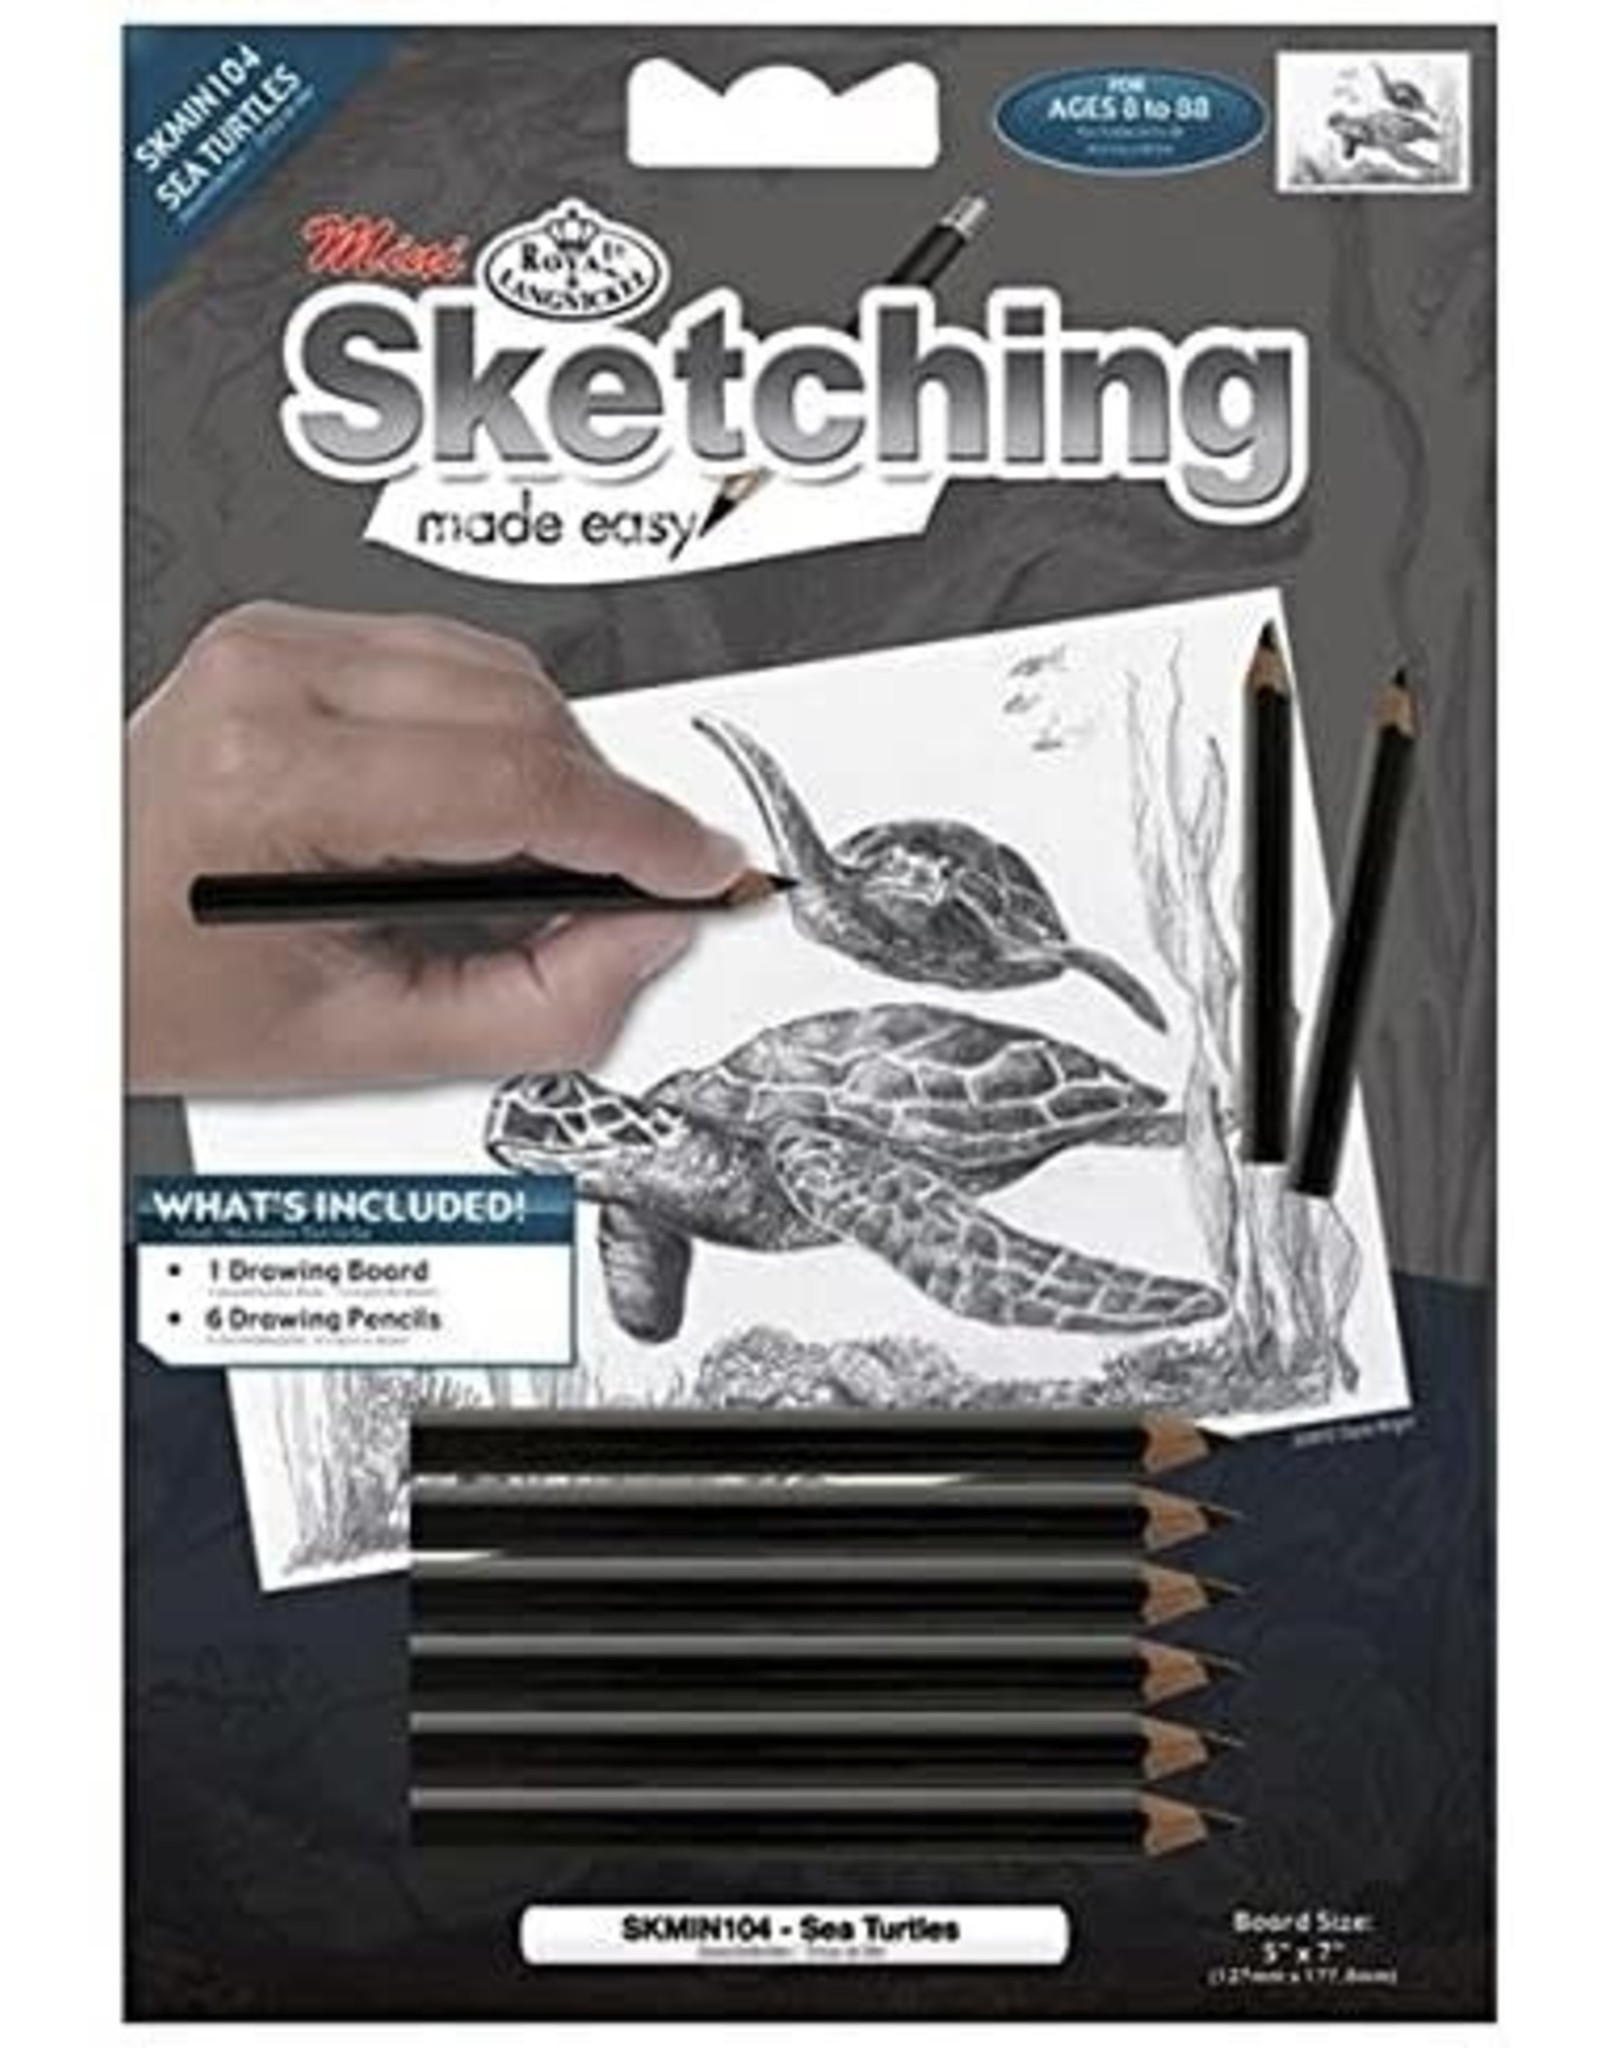 Royal and Langnickel Mini Sketching Made Easy - Sea Turtles